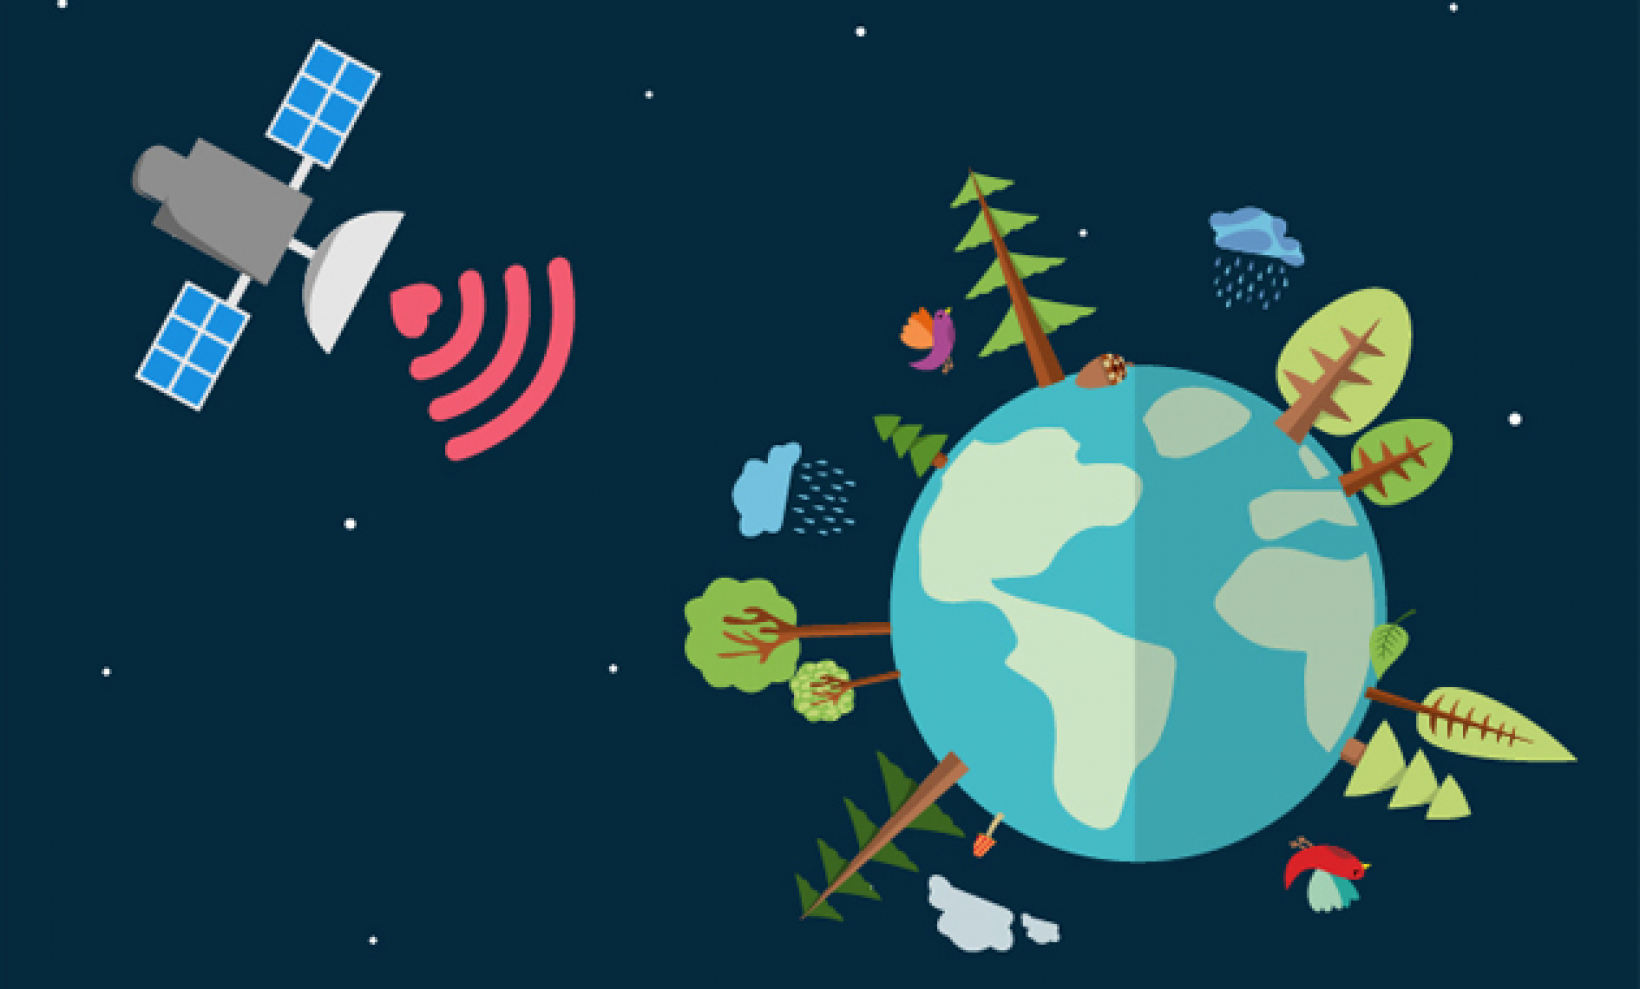 Space technologies are a key asset in the fight for a greener, more sustainable planet.